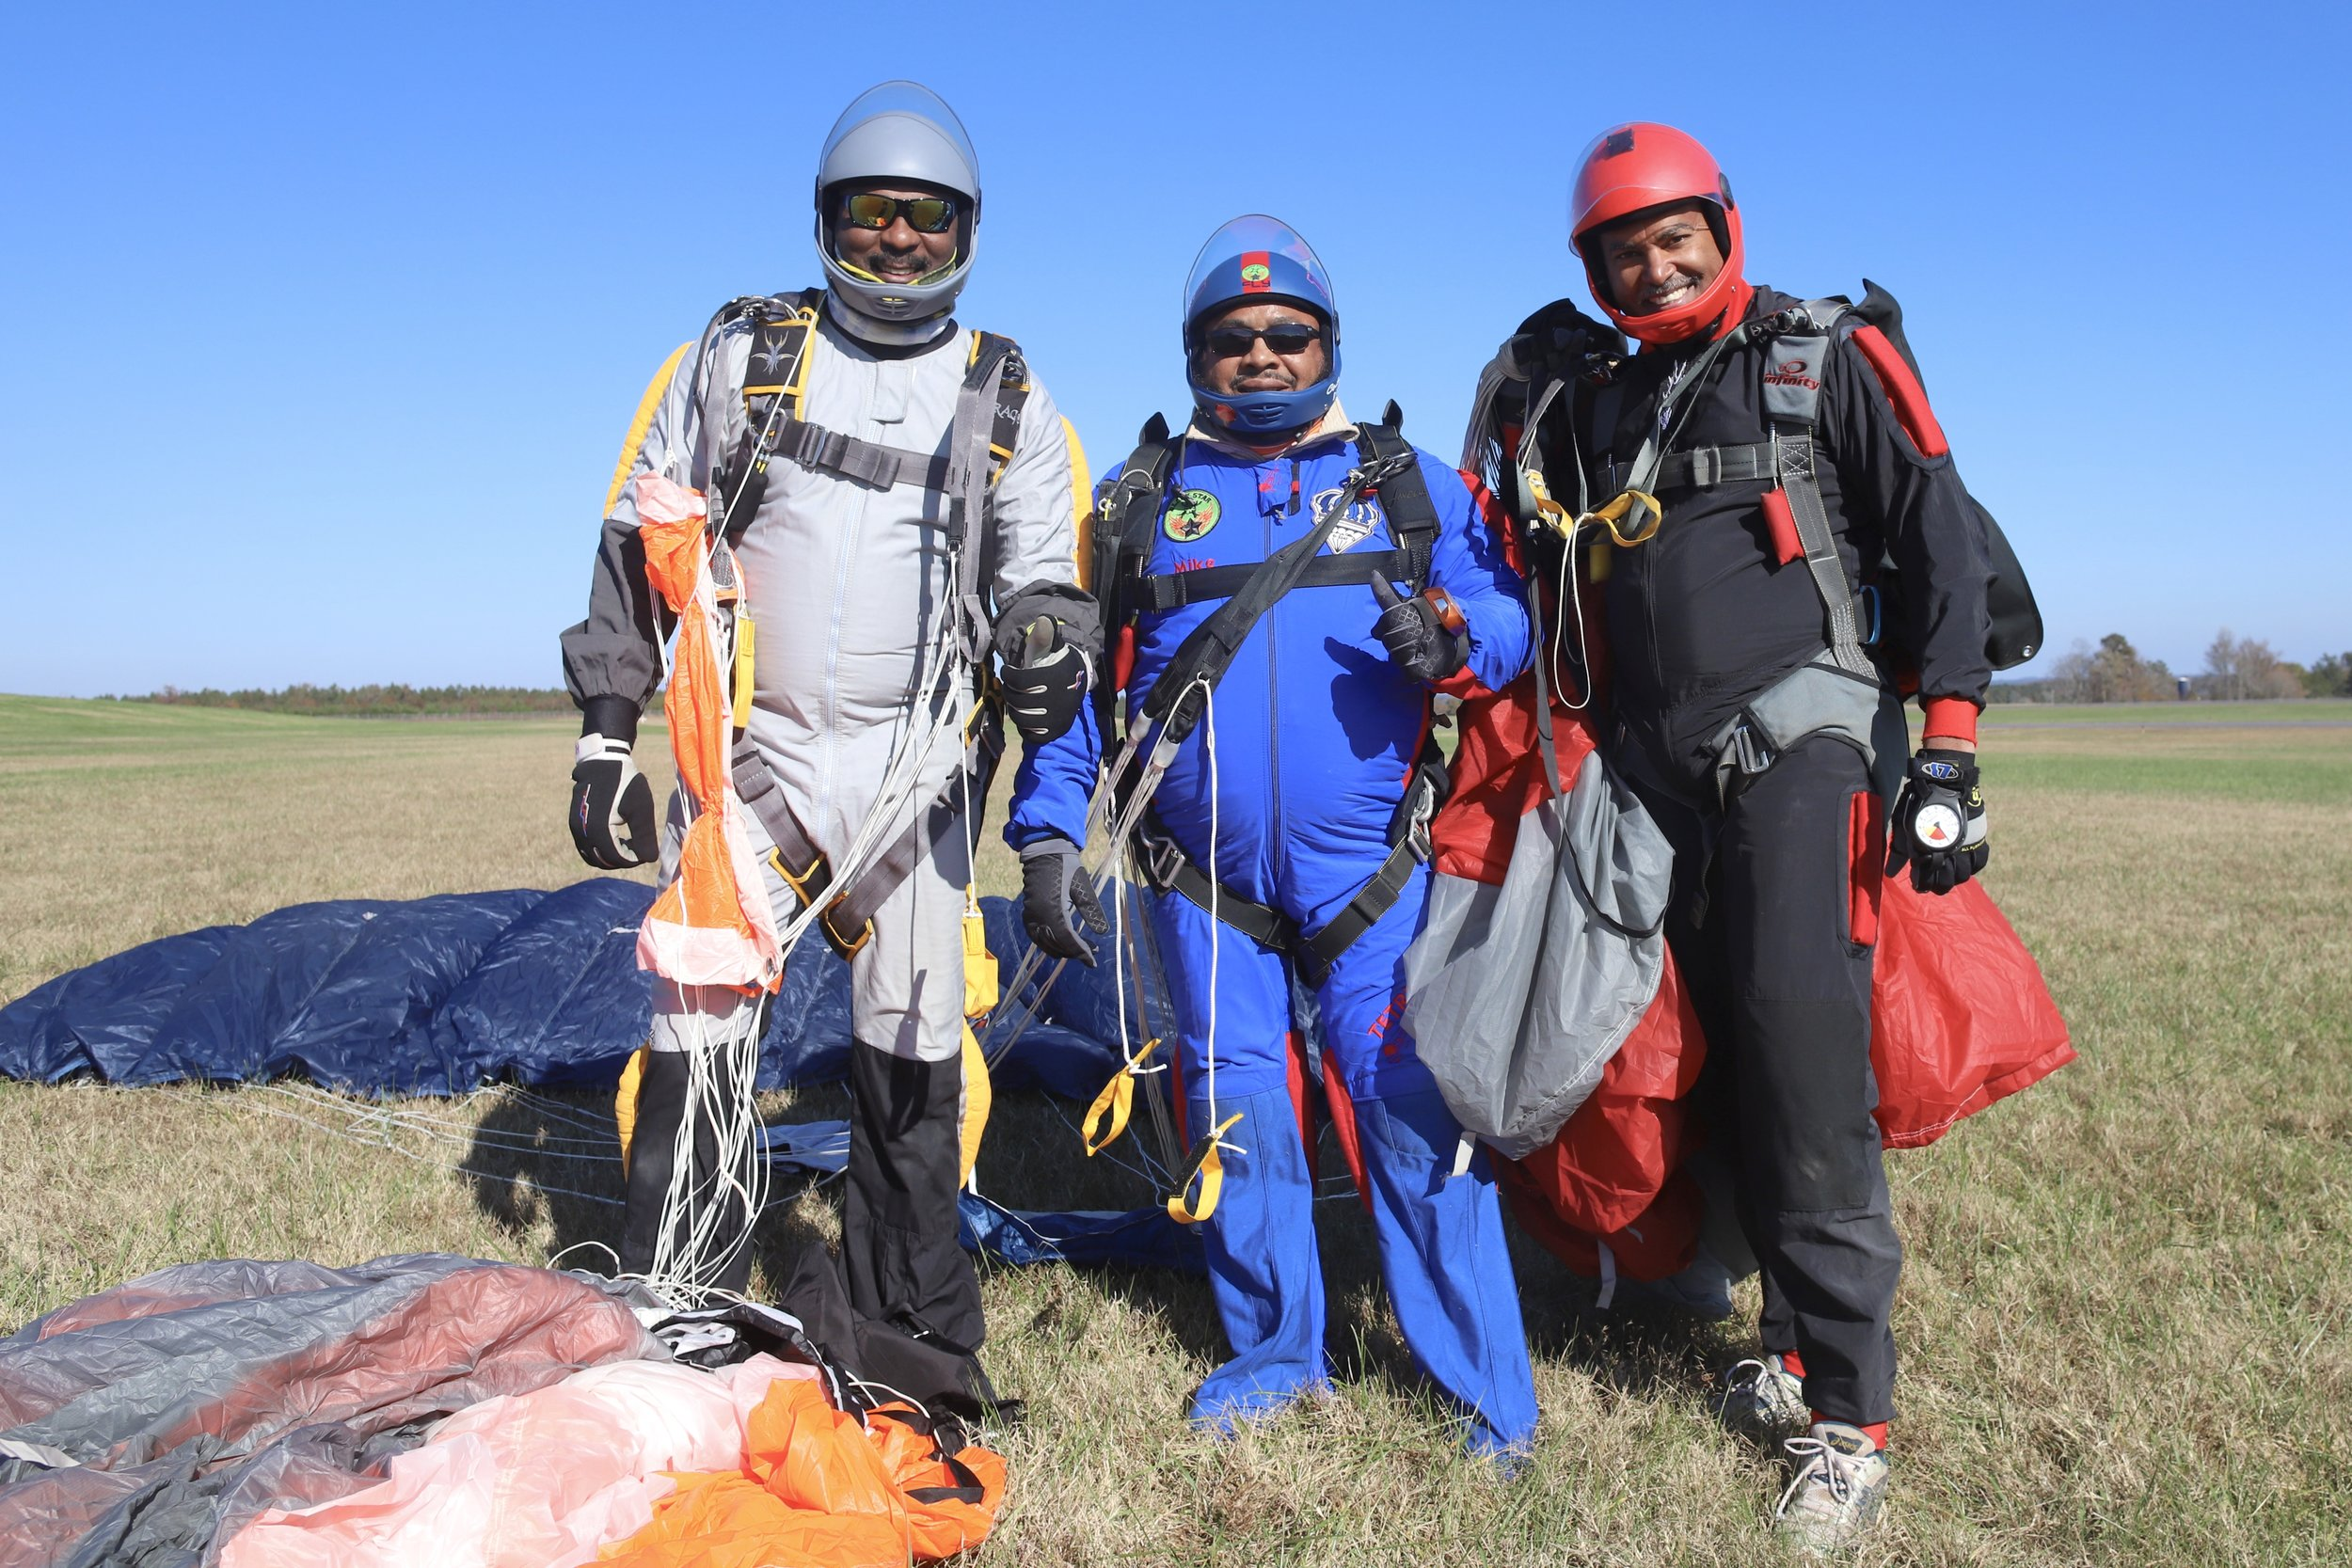 Ken Horton (far left) went on a skydive to celebrate his 50th birthday—he's been skydiving ever since!  Photo courtesy of Don Carrington